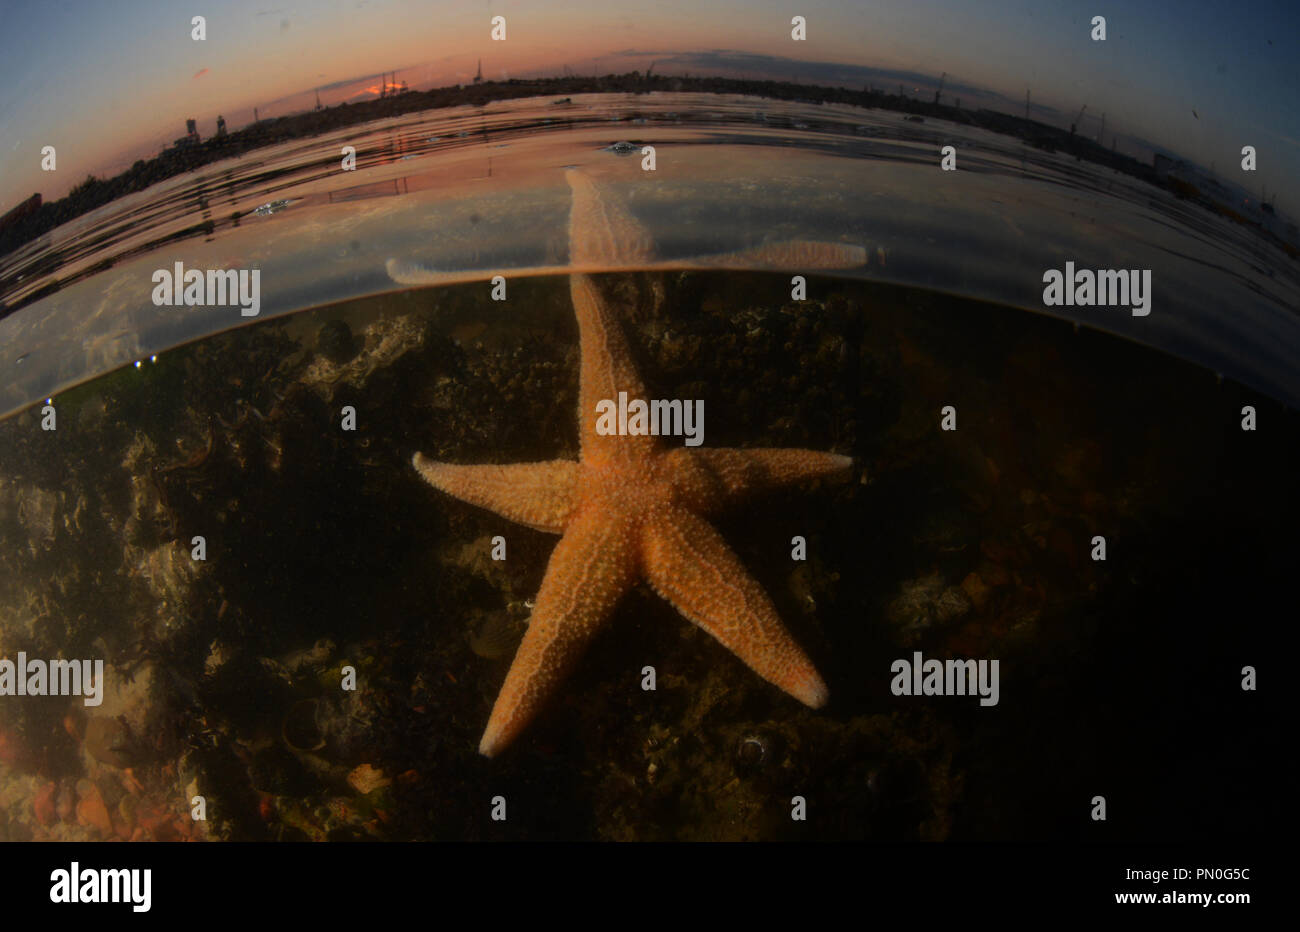 Split level shot of a common starfish in Southampton Water (Solent region, Hampshire) at sunset. - Stock Image